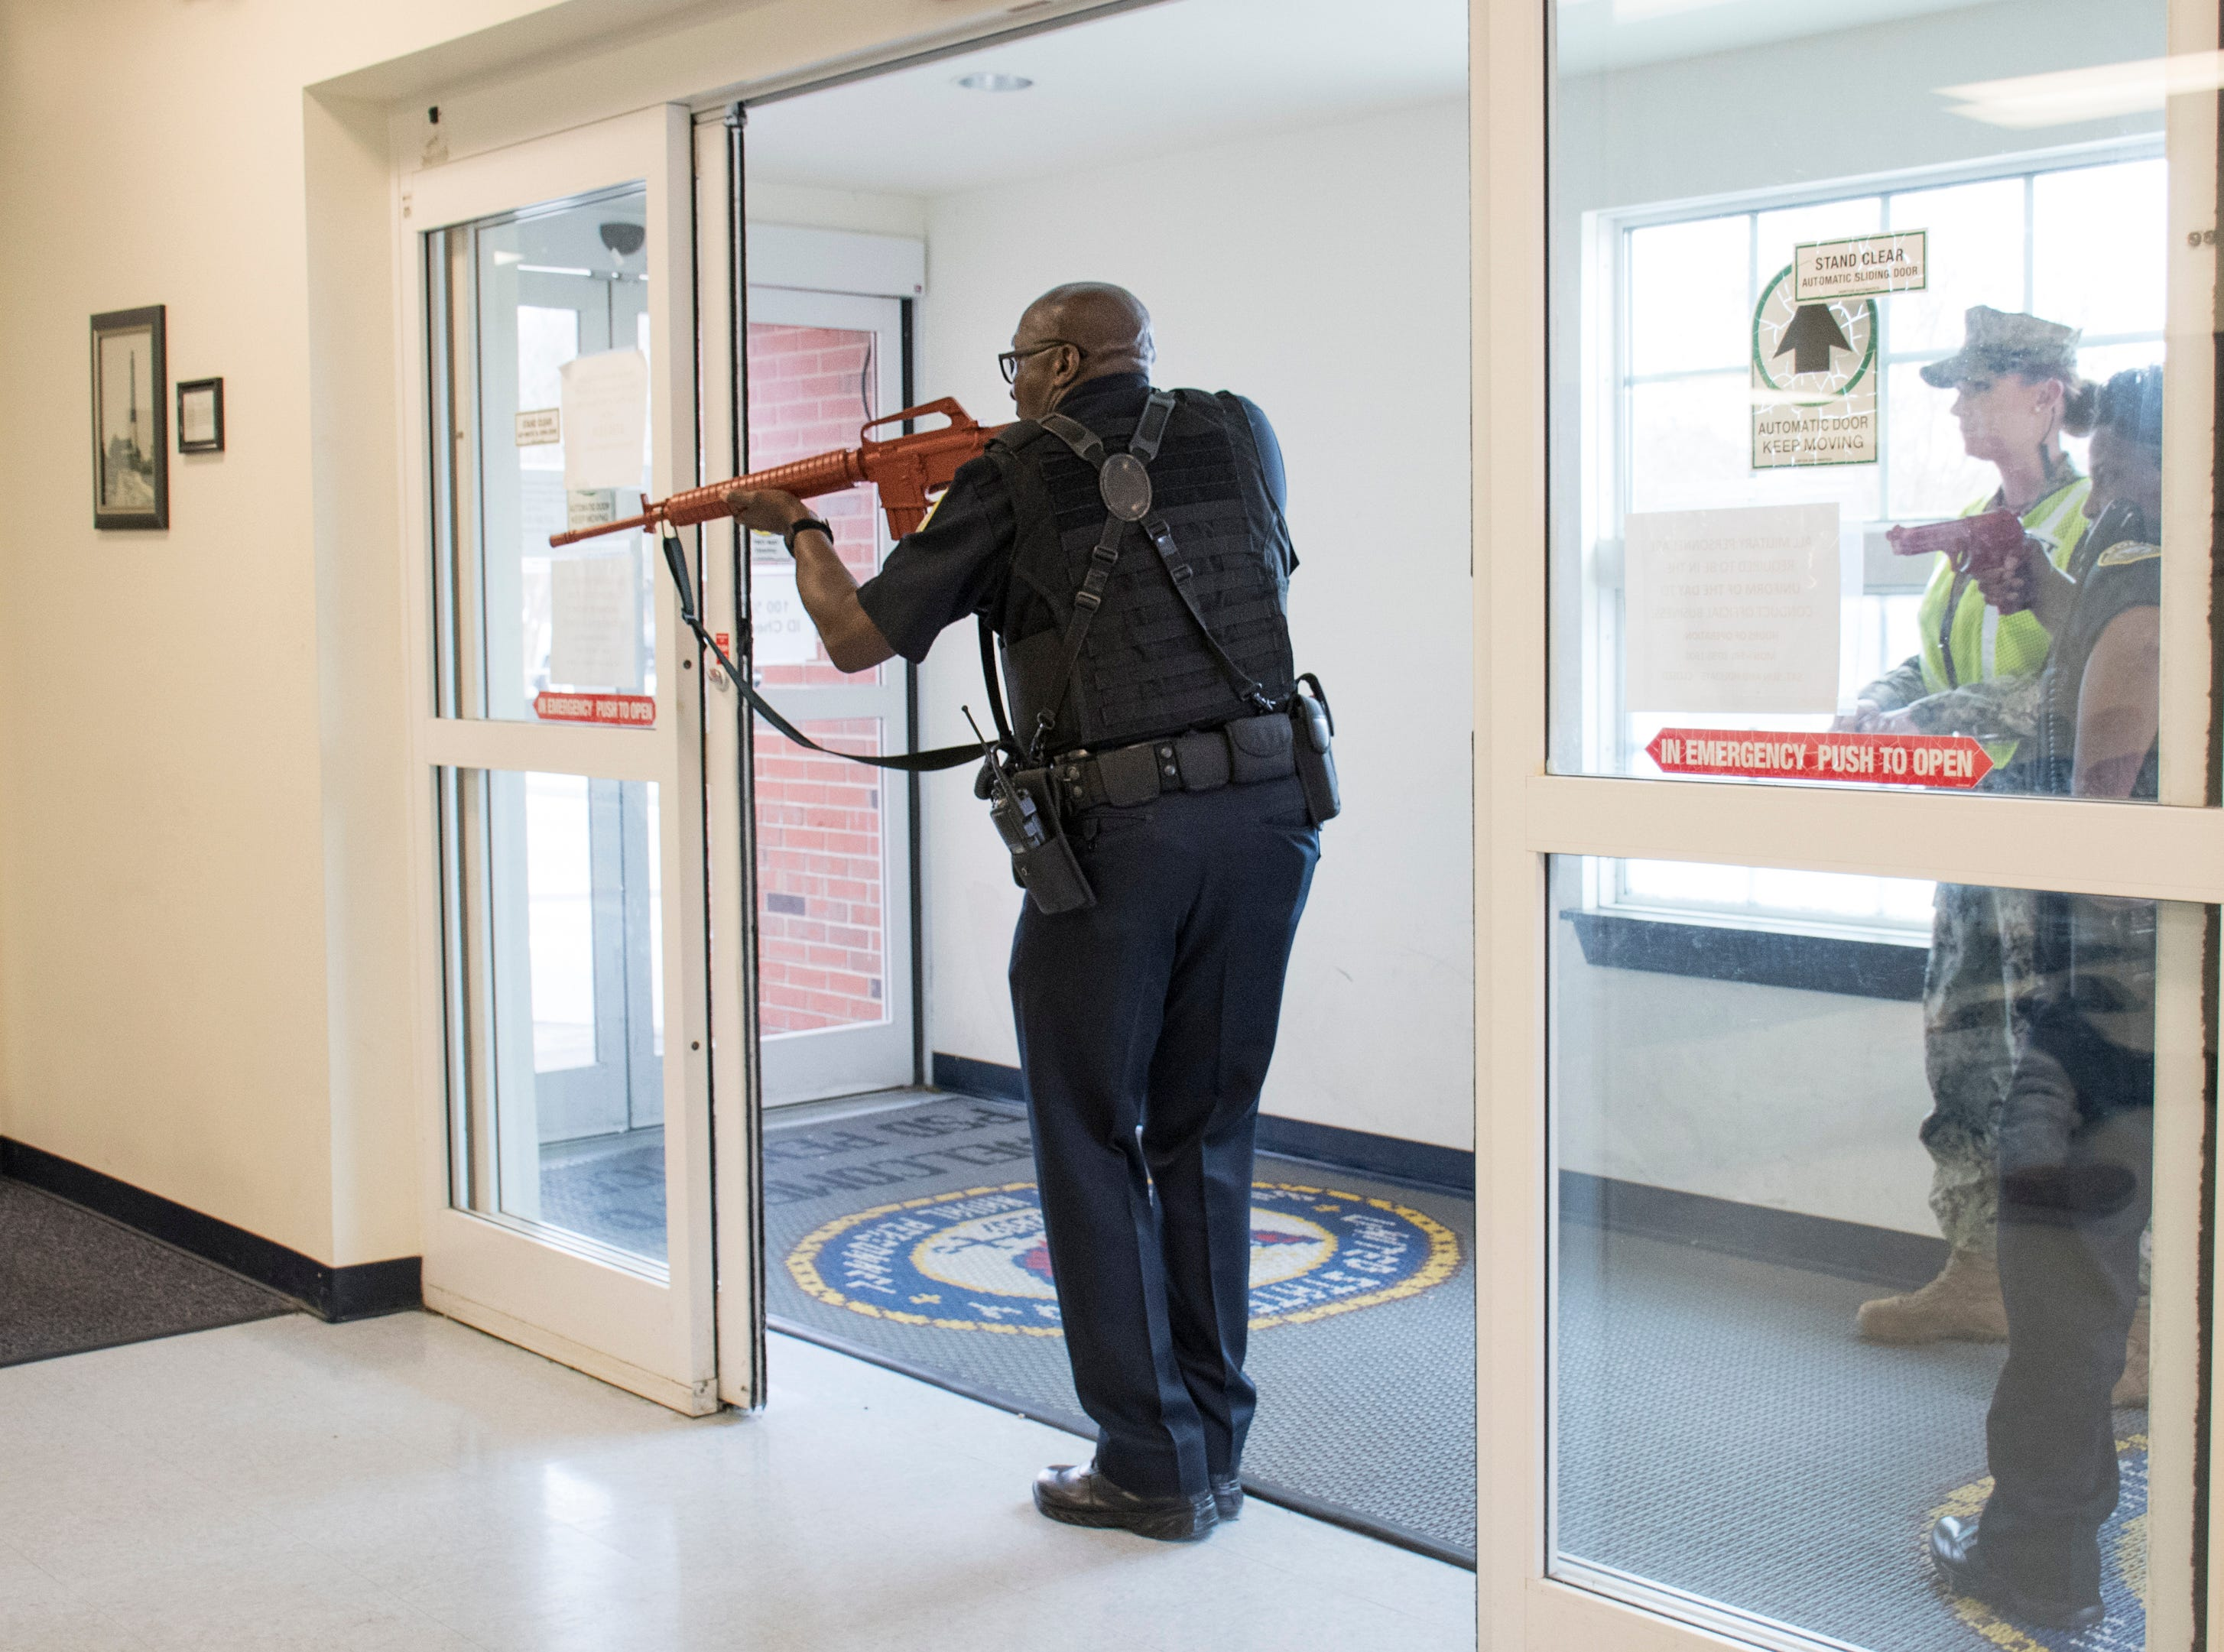 NAS Pensacola Police Officers Samuel Watkins, left, and Sophia Barnes enter the Personnel Support Detachment building during Exercise Solid Curtain-Citadel Shield, an annual security exercise is conducted at NAS Pensacola on Tuesday, February 4, 2019.